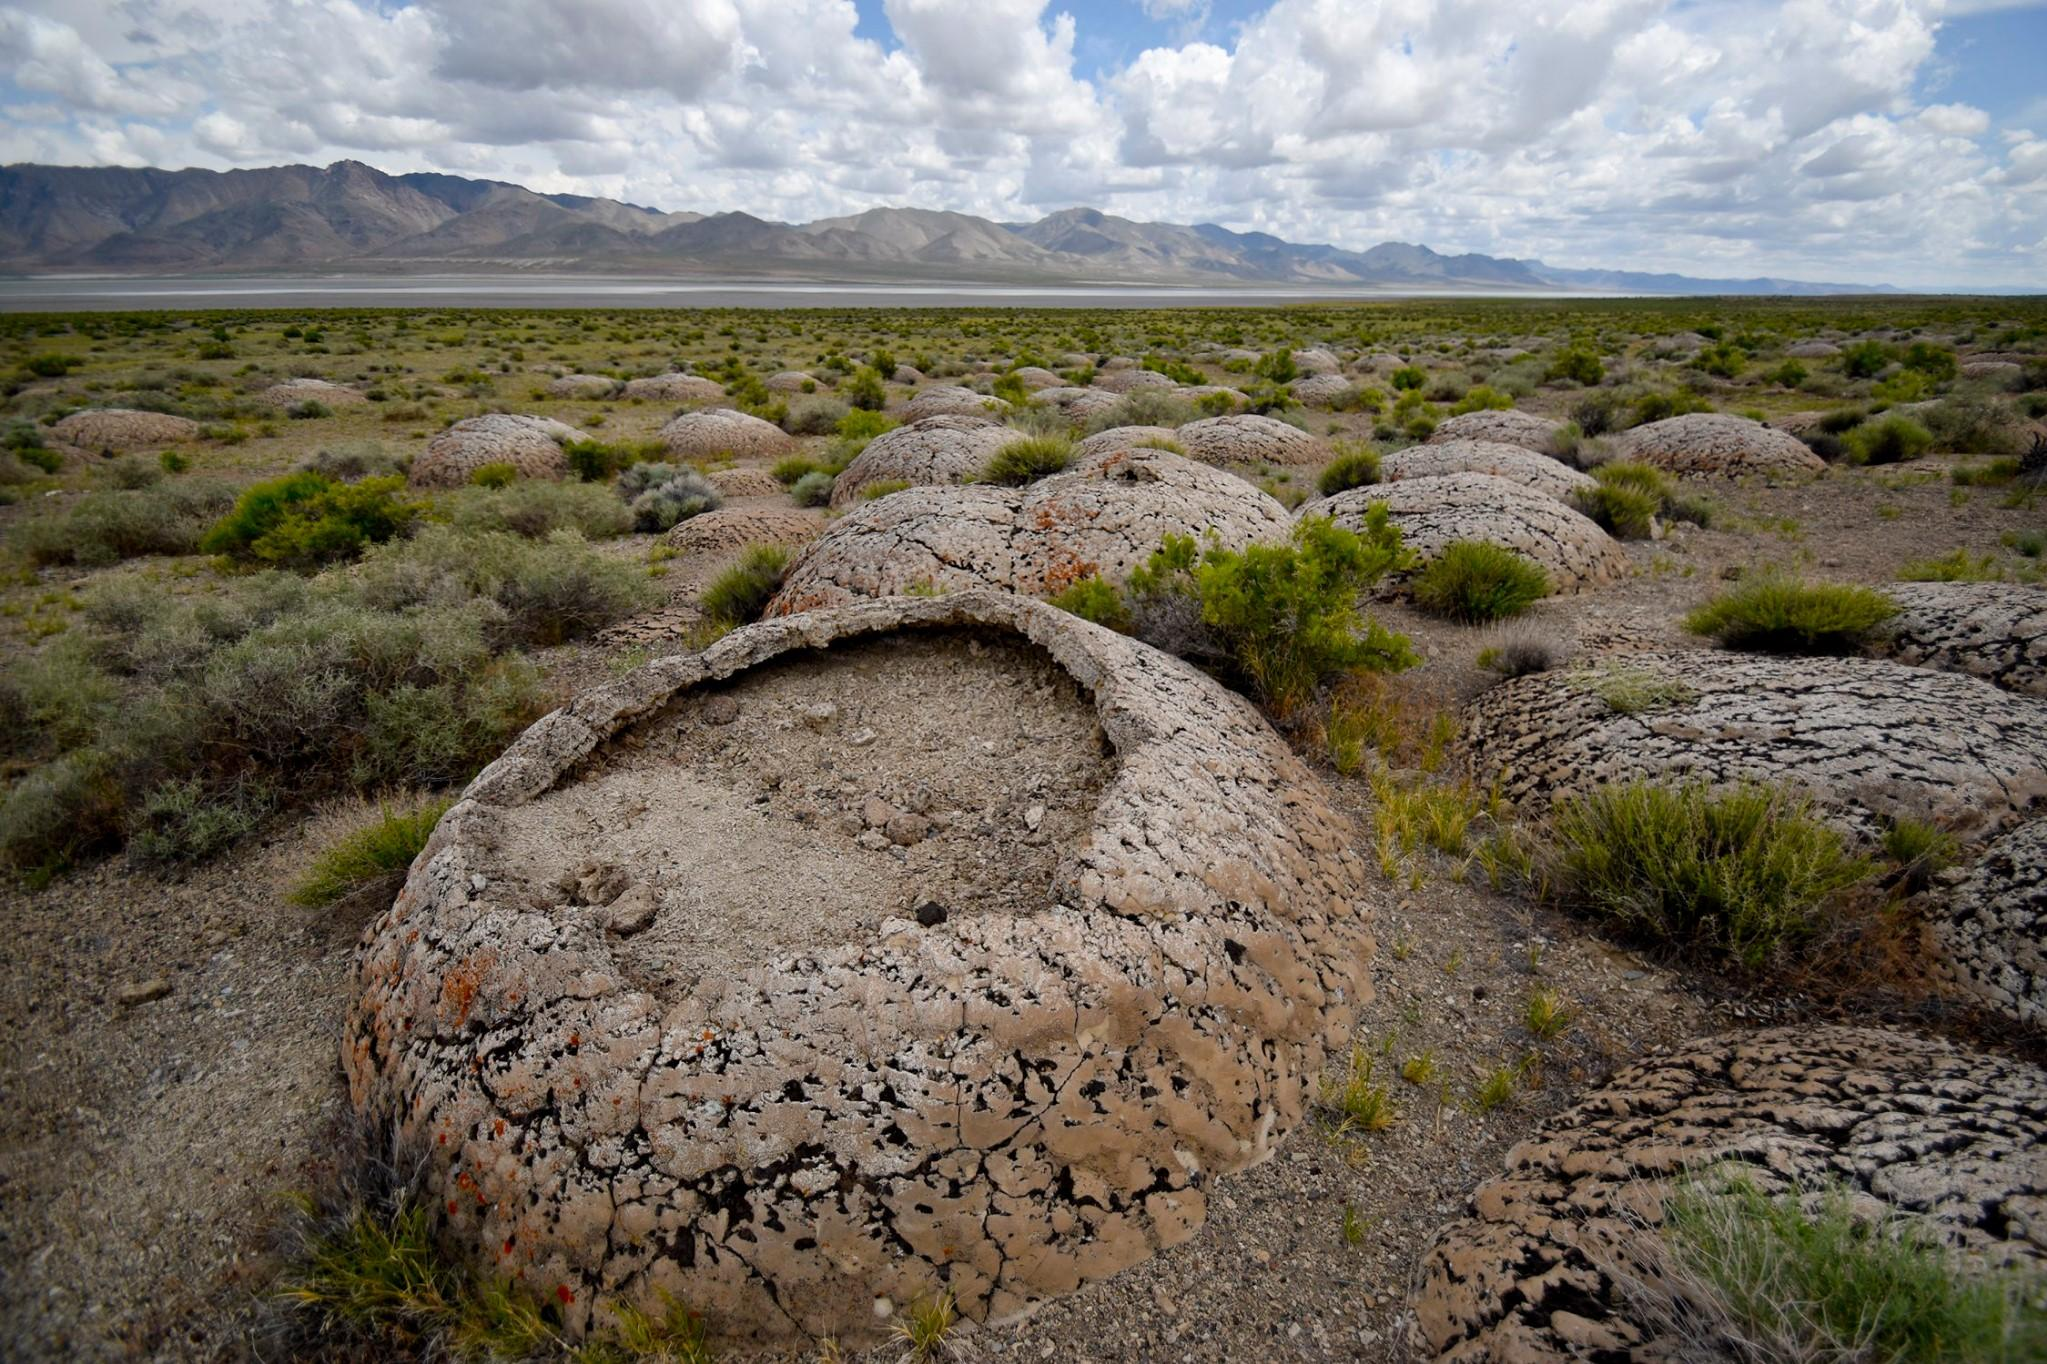 14,000-Year-Old Relics Unearthed From This Dried-Up Nevada Lake Solve An Ancient Mystery